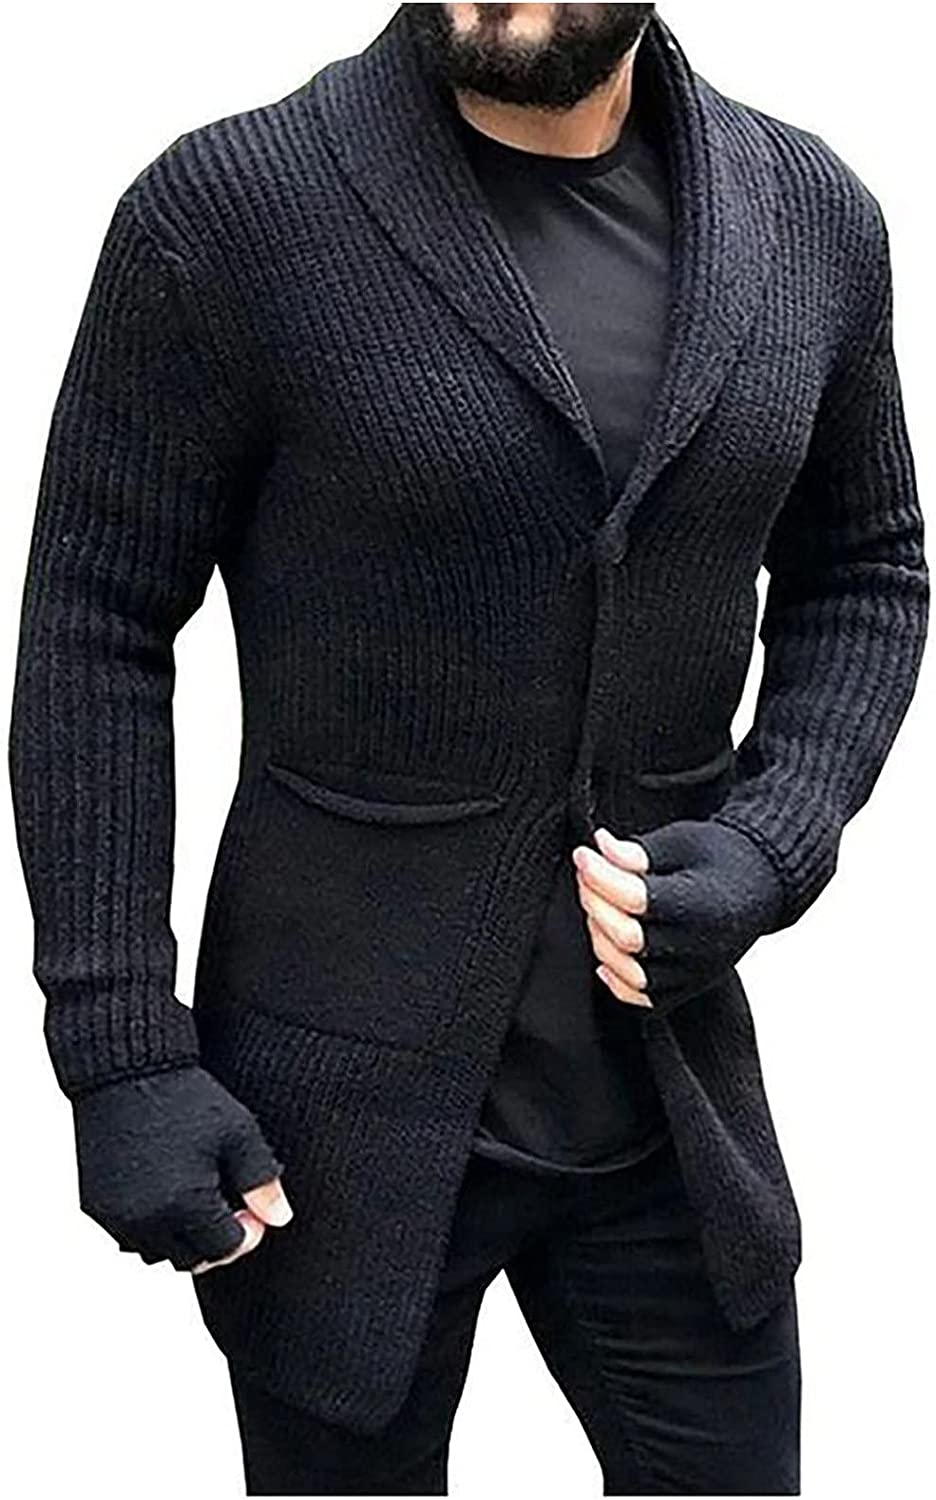 Huangse Men's Slim Fit Shawl Collar Cardigan Sweater Solid Color Button Down Knitted Sweaters with Pockets